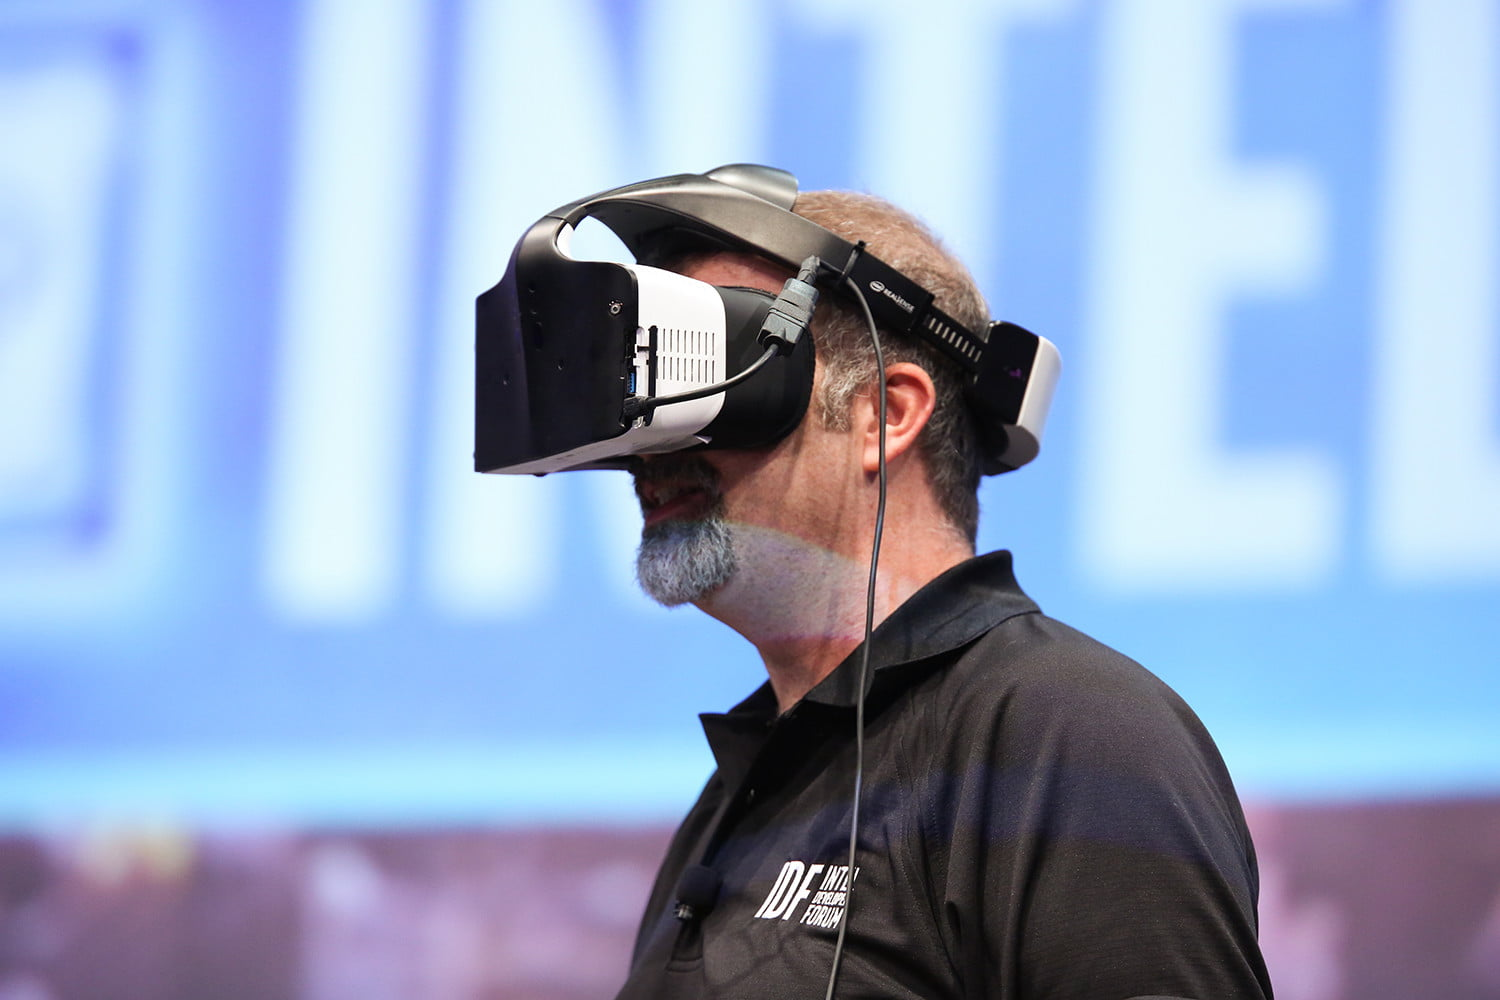 Intel won't lead the VR revolution, but it will power those who do